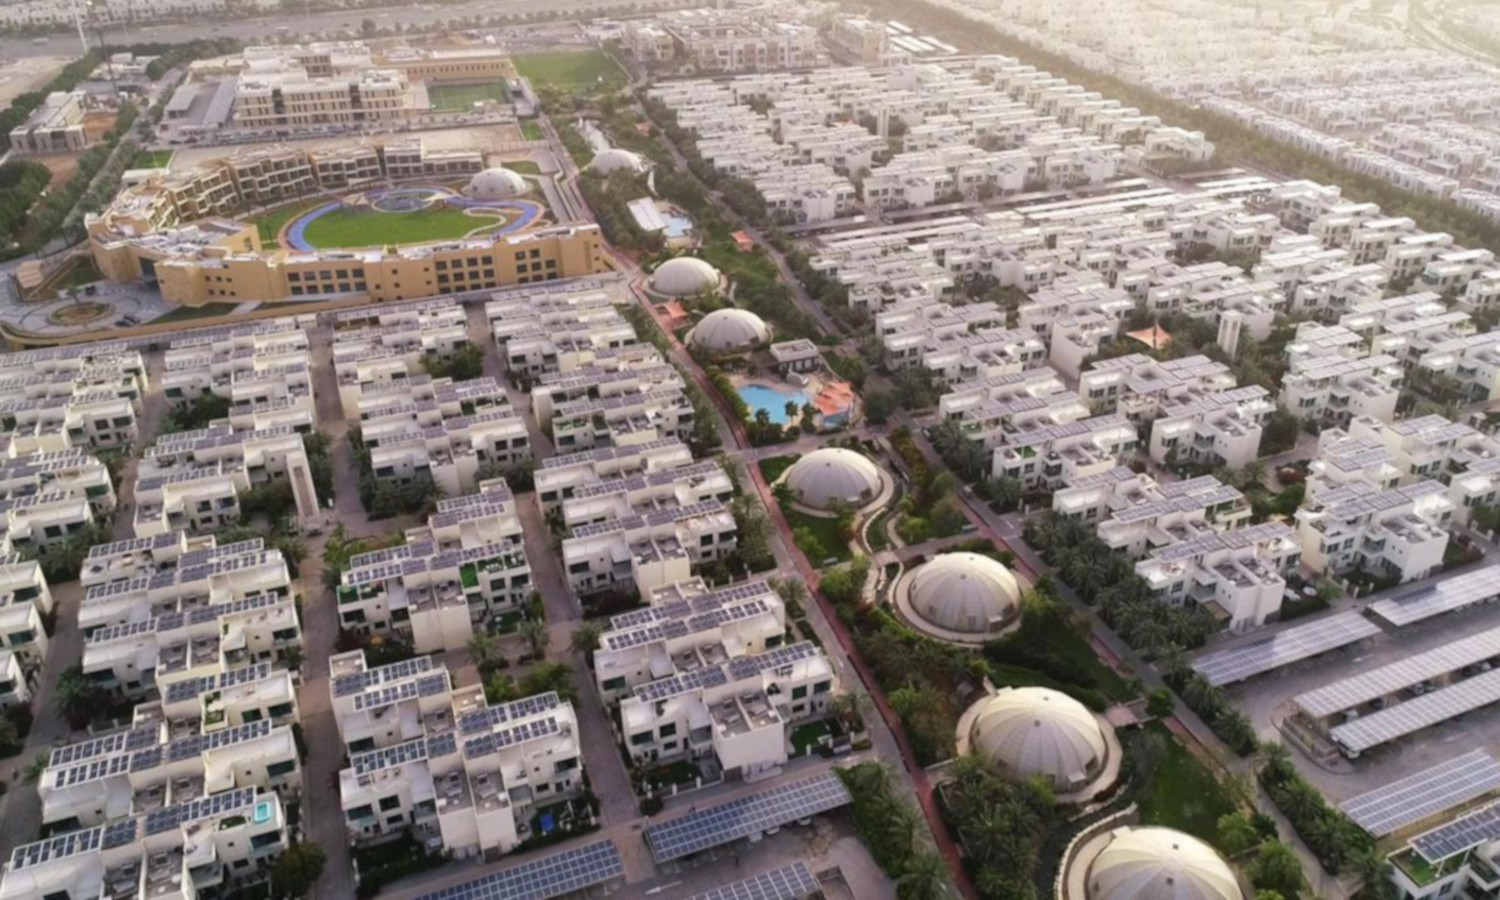 The Sustainable City in Dubai aims to become Net Zero Energy, featuring community farms and solar power.